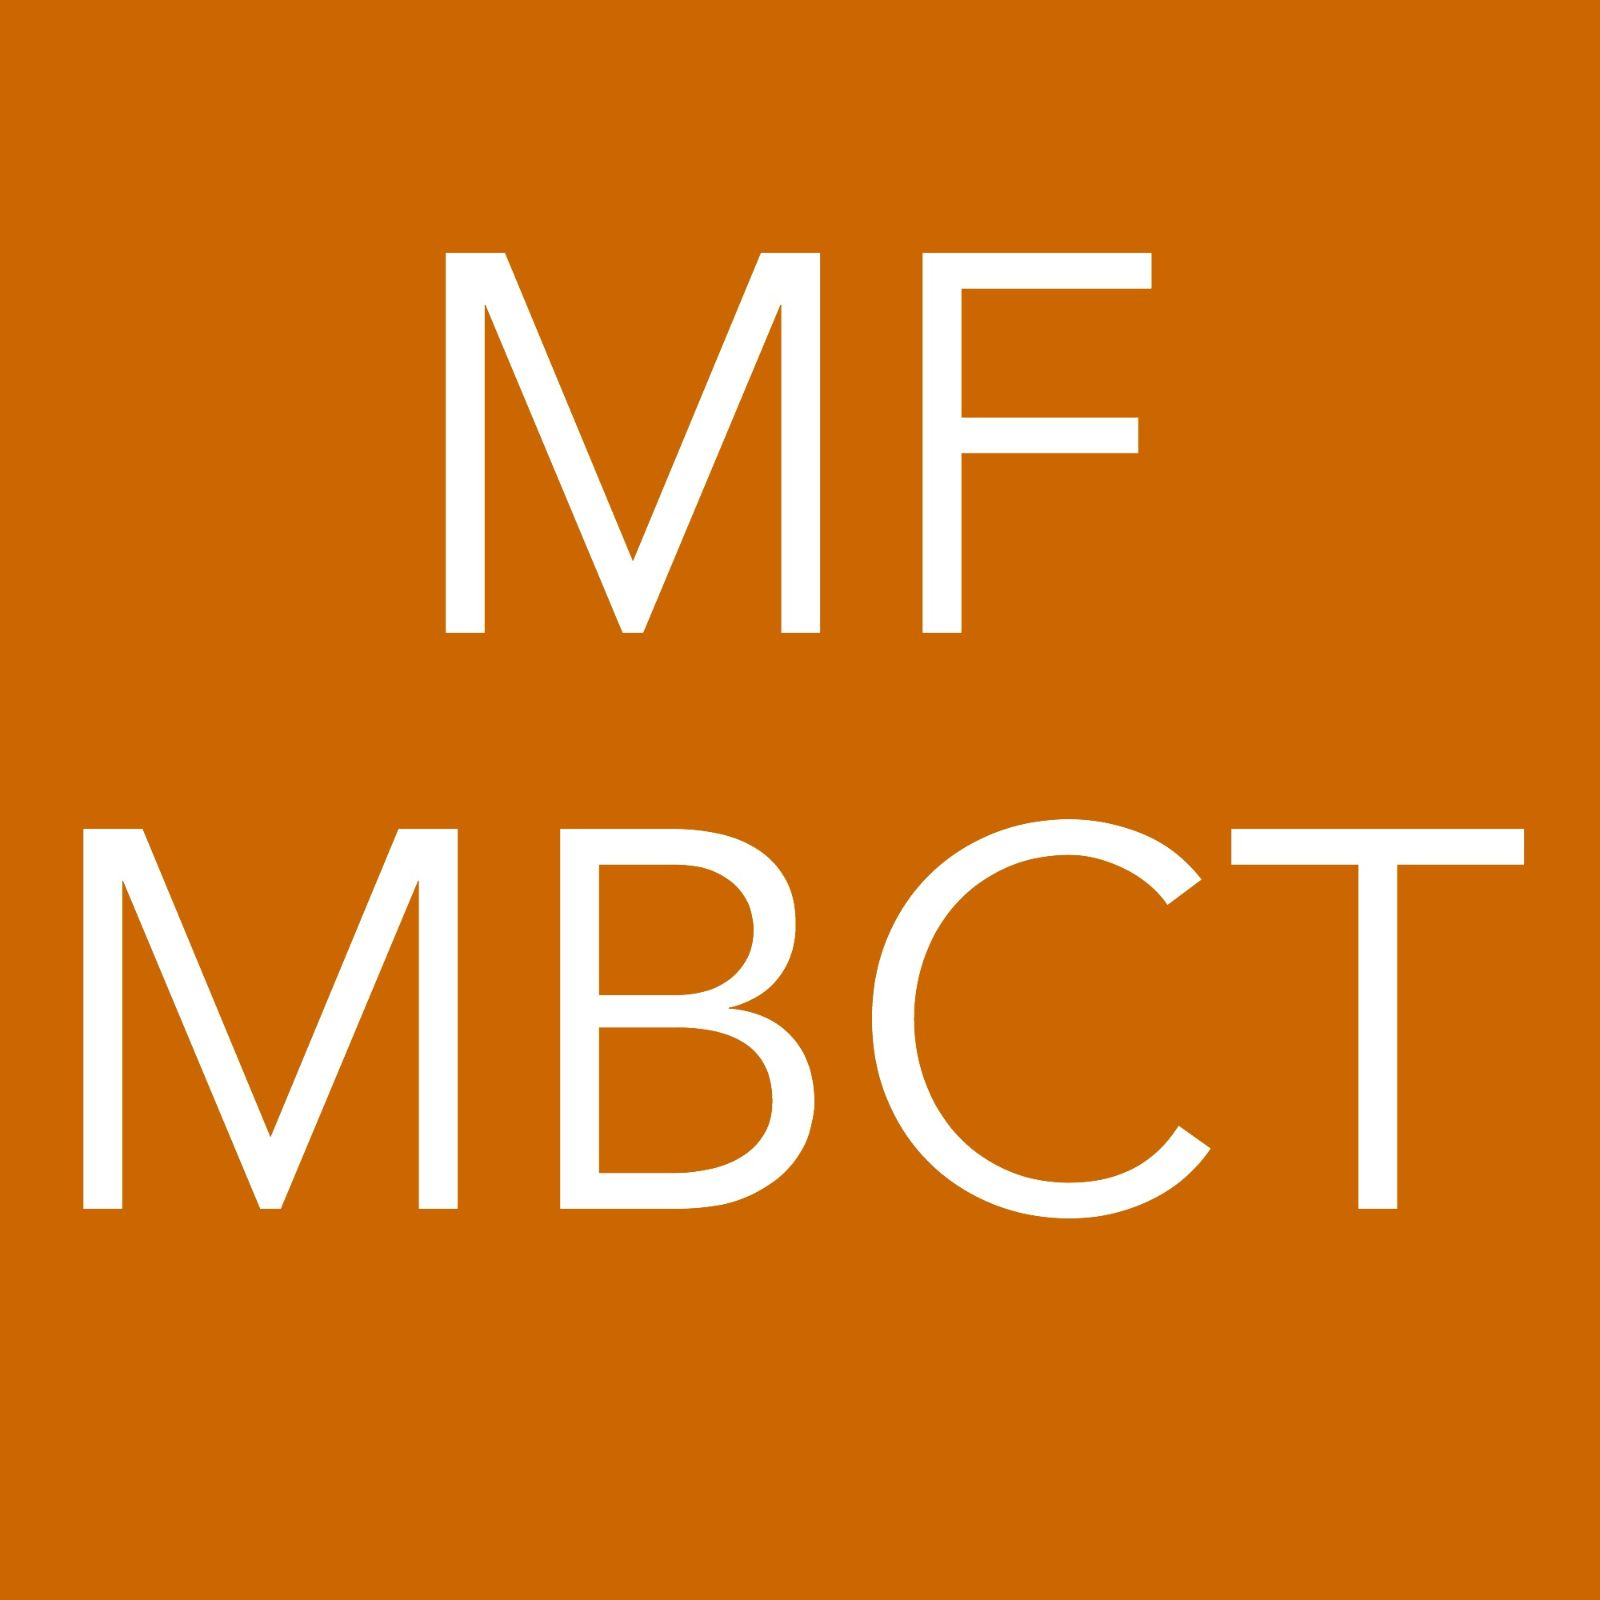 8200 [MF-MBCT] Start 12 januari 2021 pr